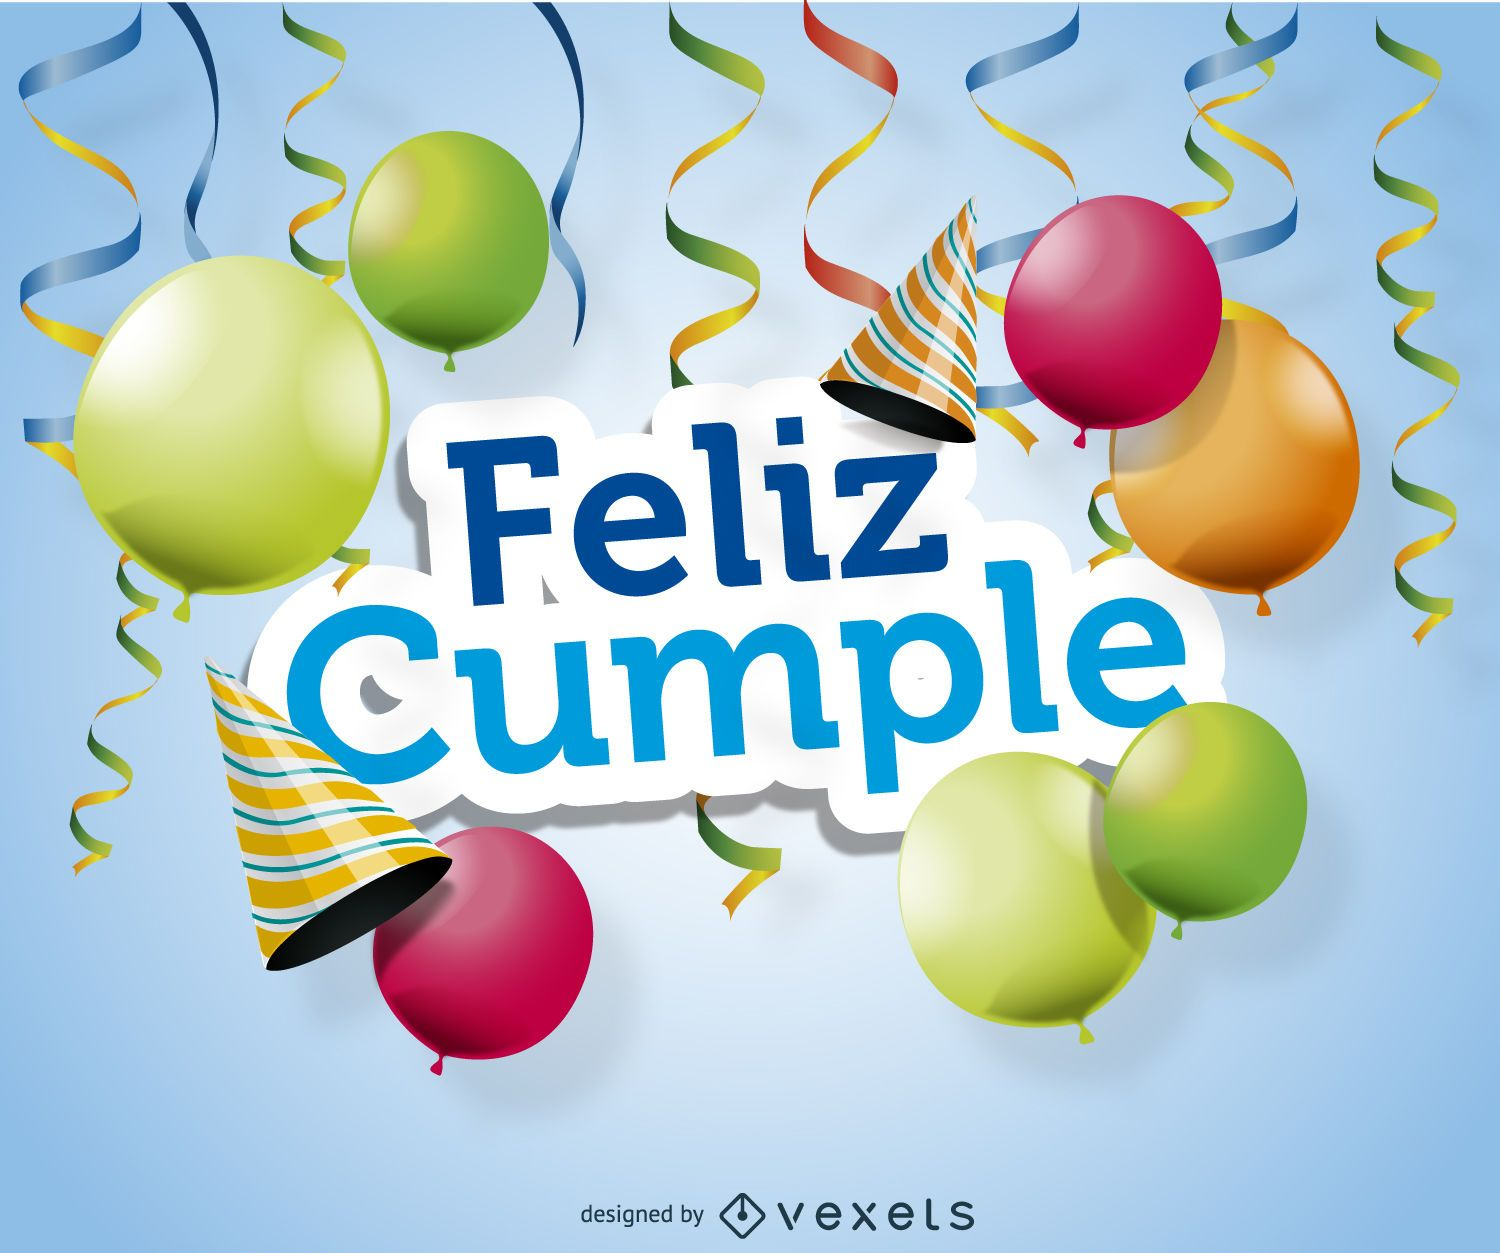 Feliz cumple poster design Vector download